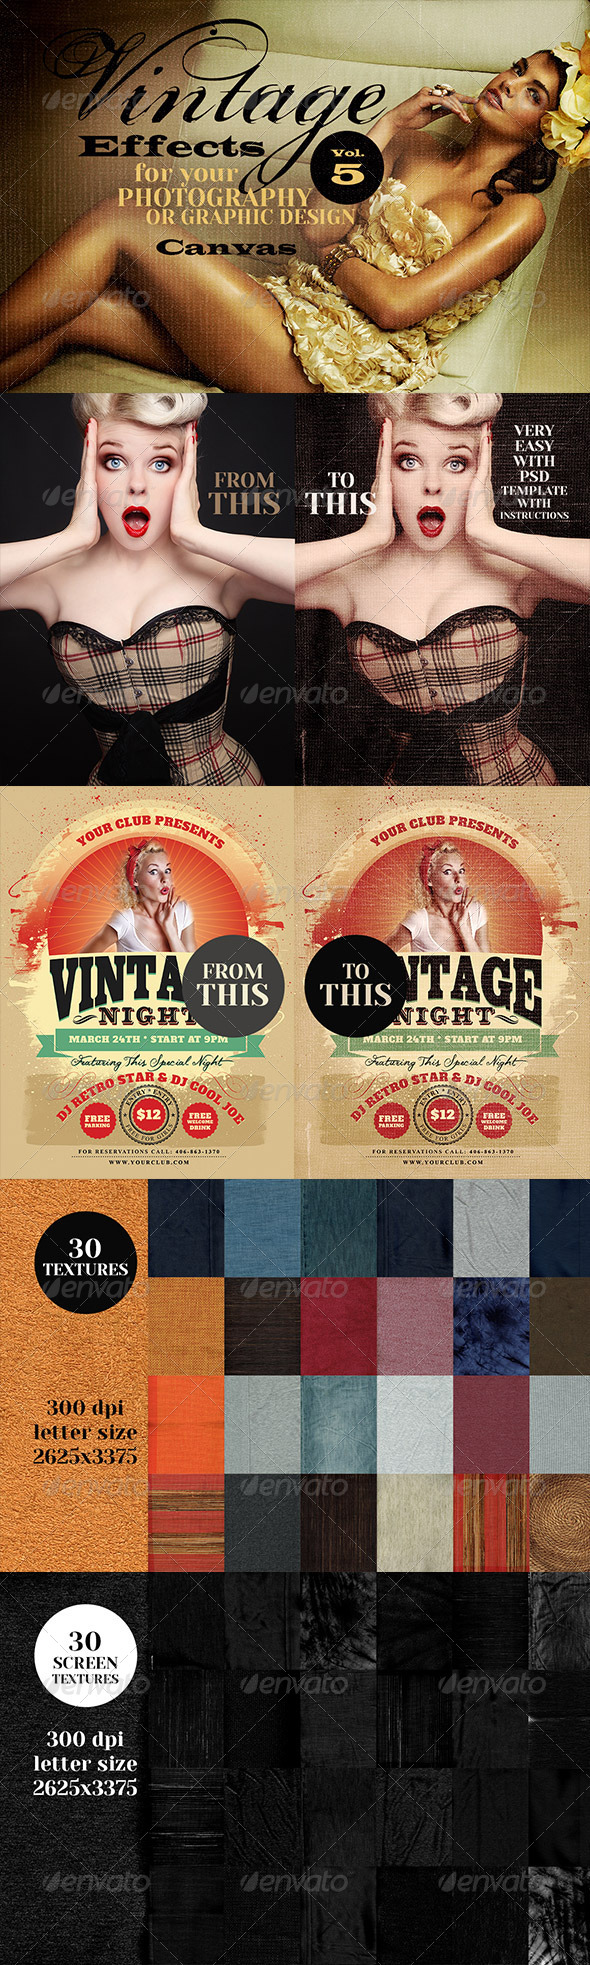 Vintage Effects for Photo, Designs 5 - Miscellaneous Photo Templates